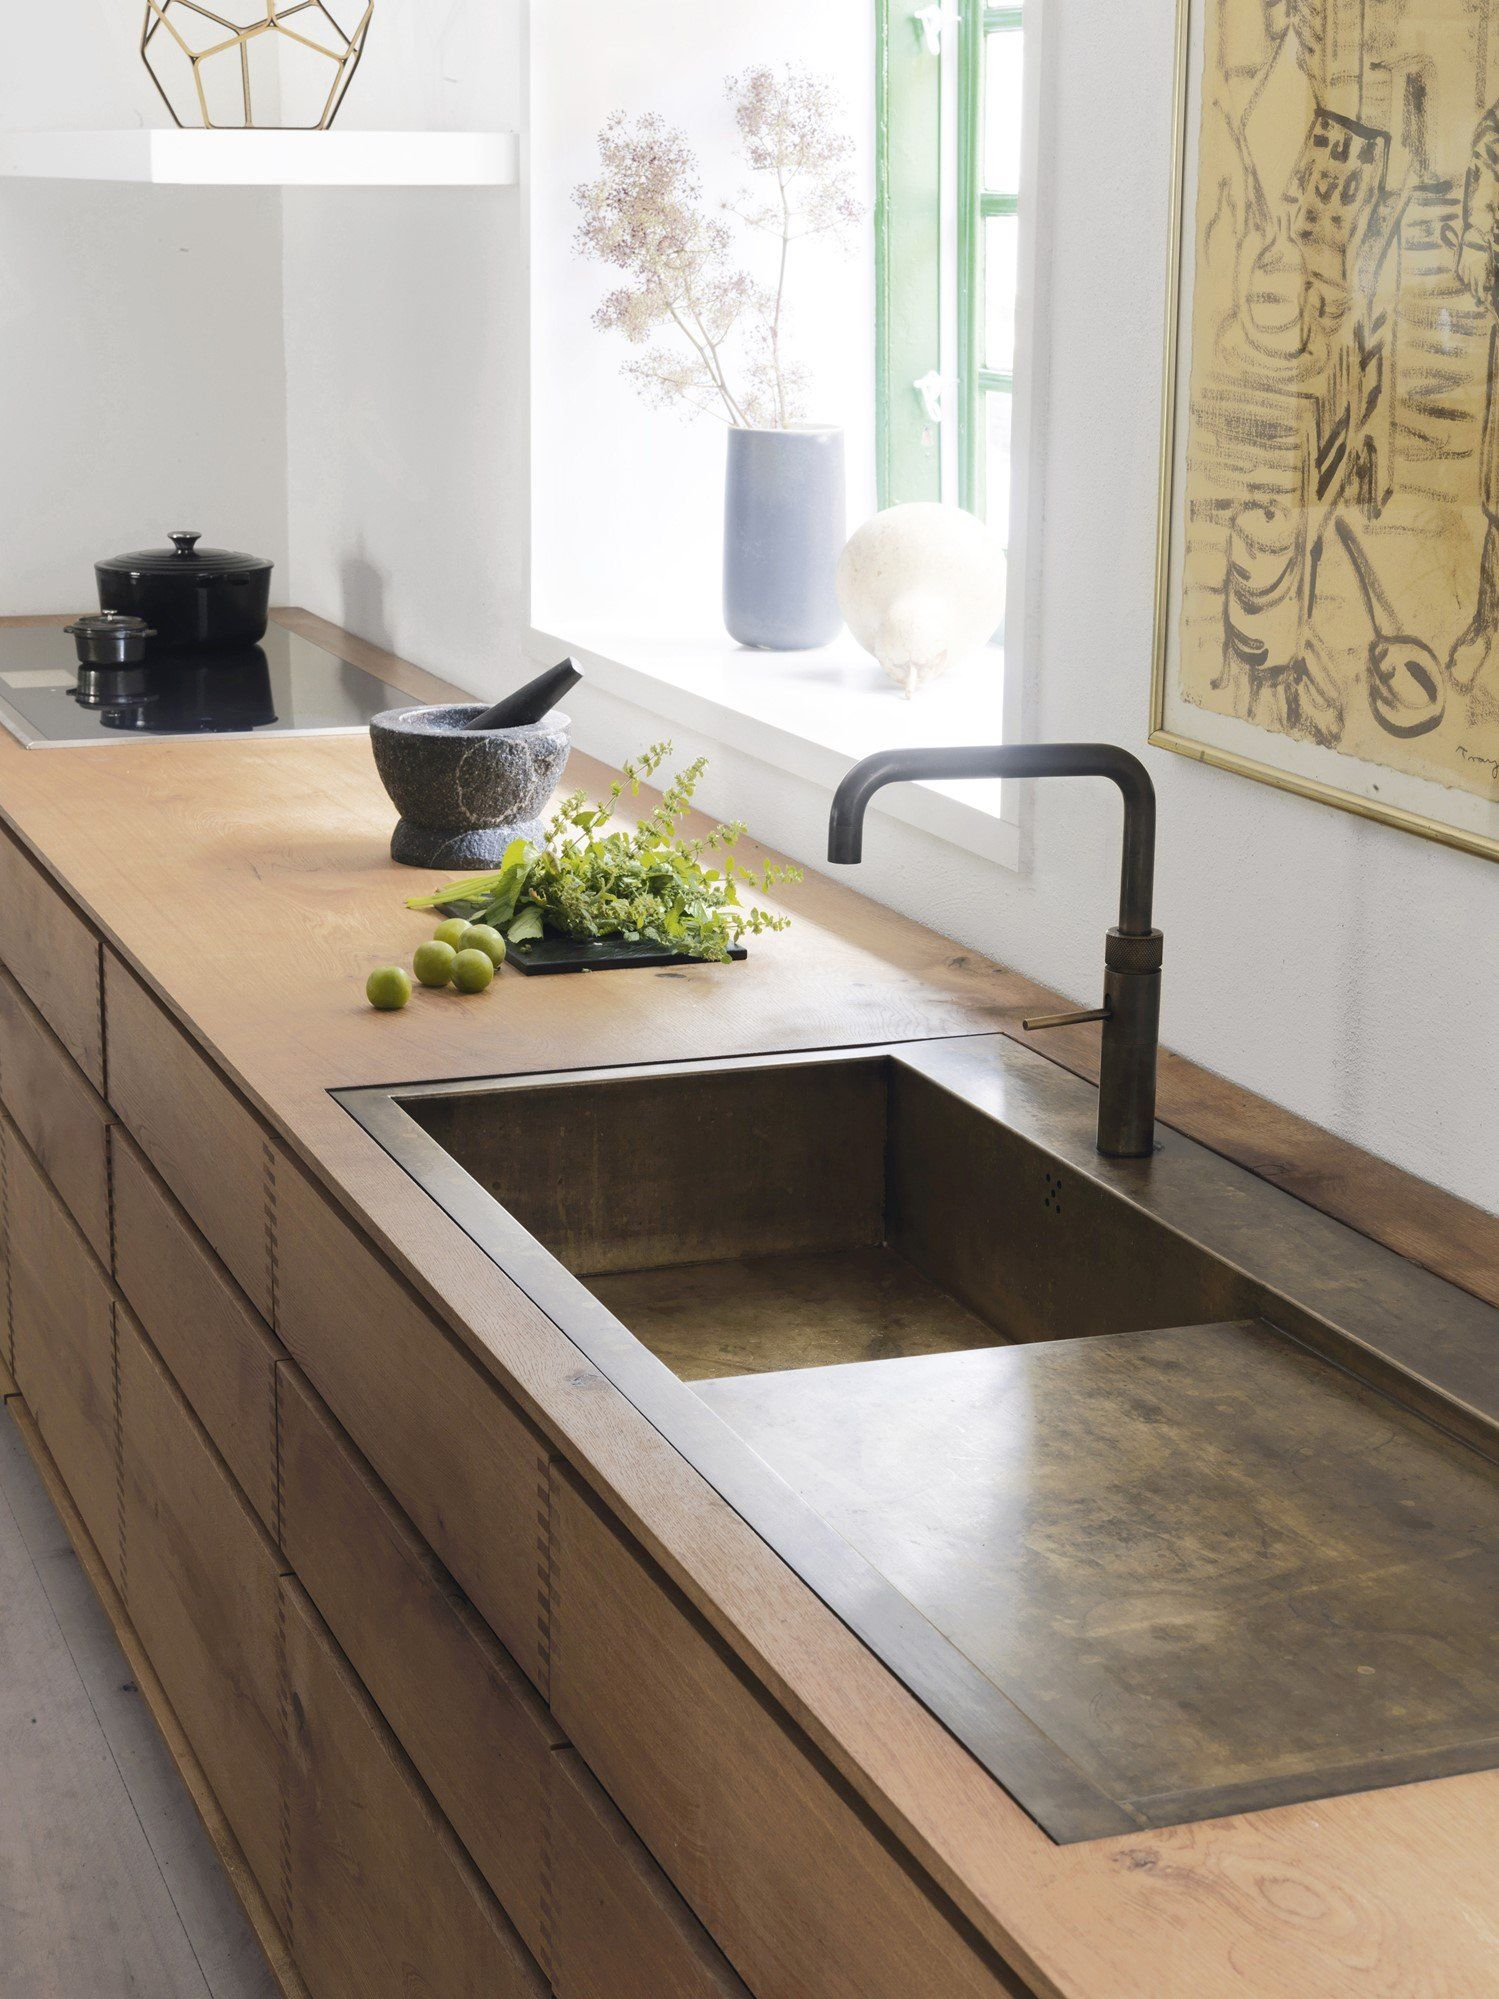 Modern and minimalist kitchen sink design